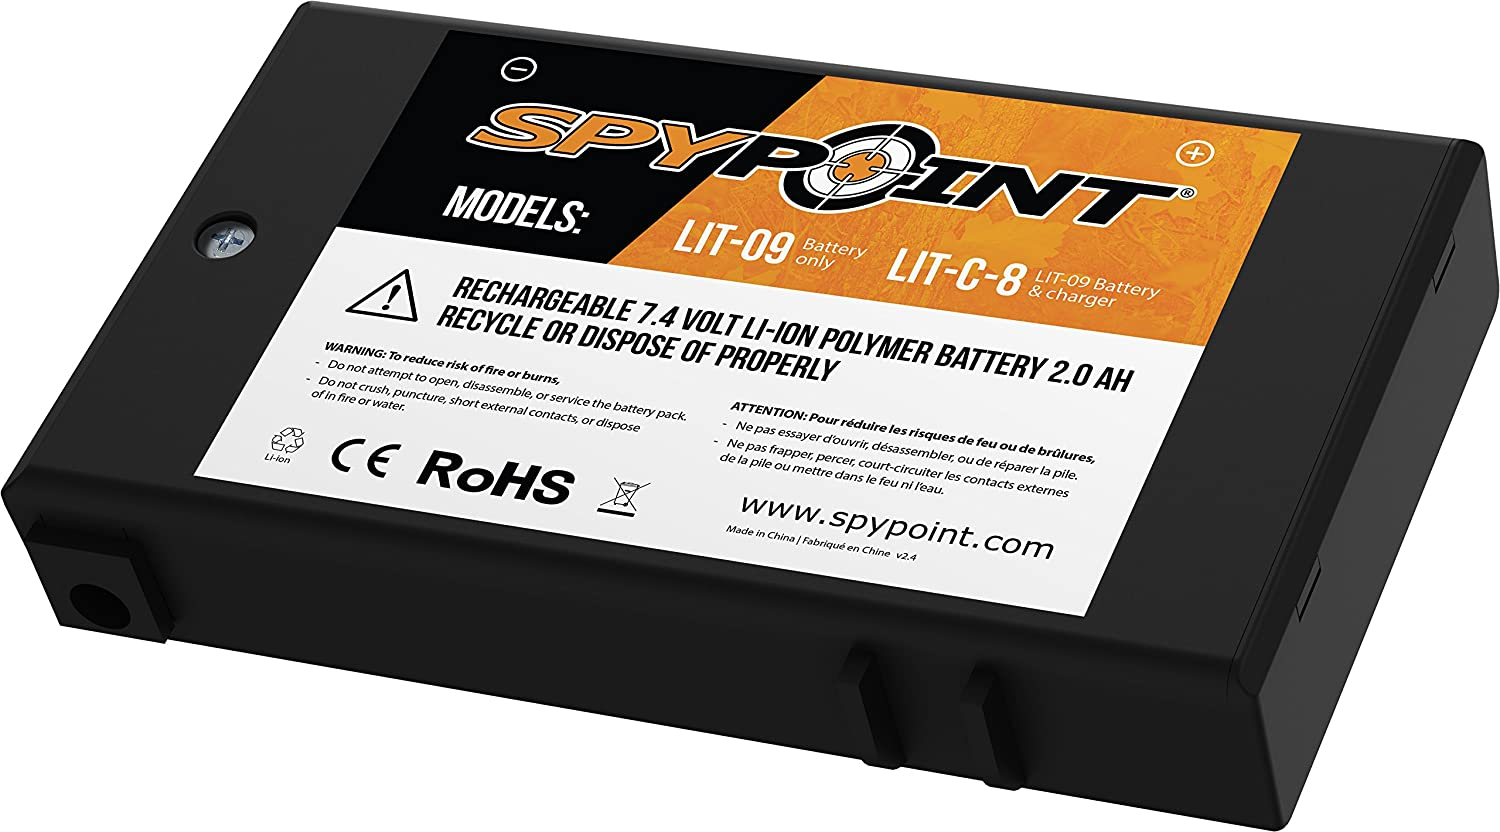 SpypointAdditional lithium battery for LIT-C-8